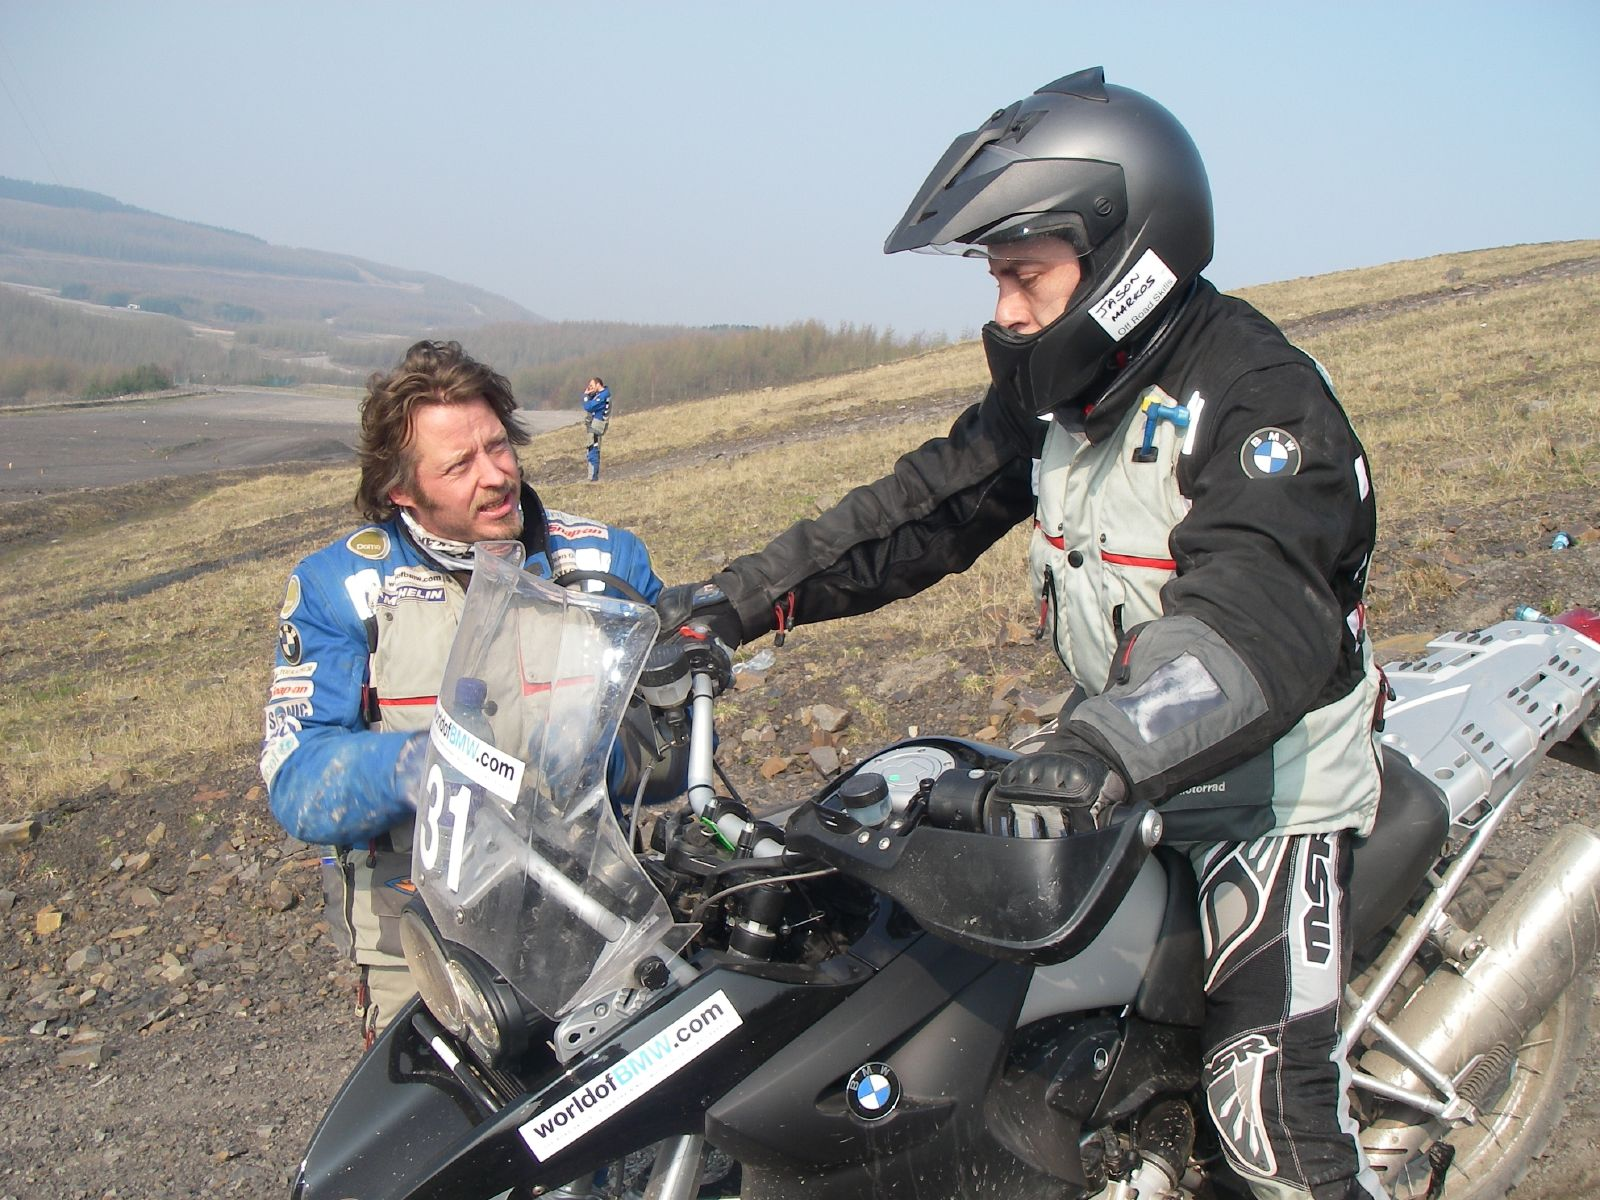 getting taught by Charley Boorman at BMWs Offroadskills school